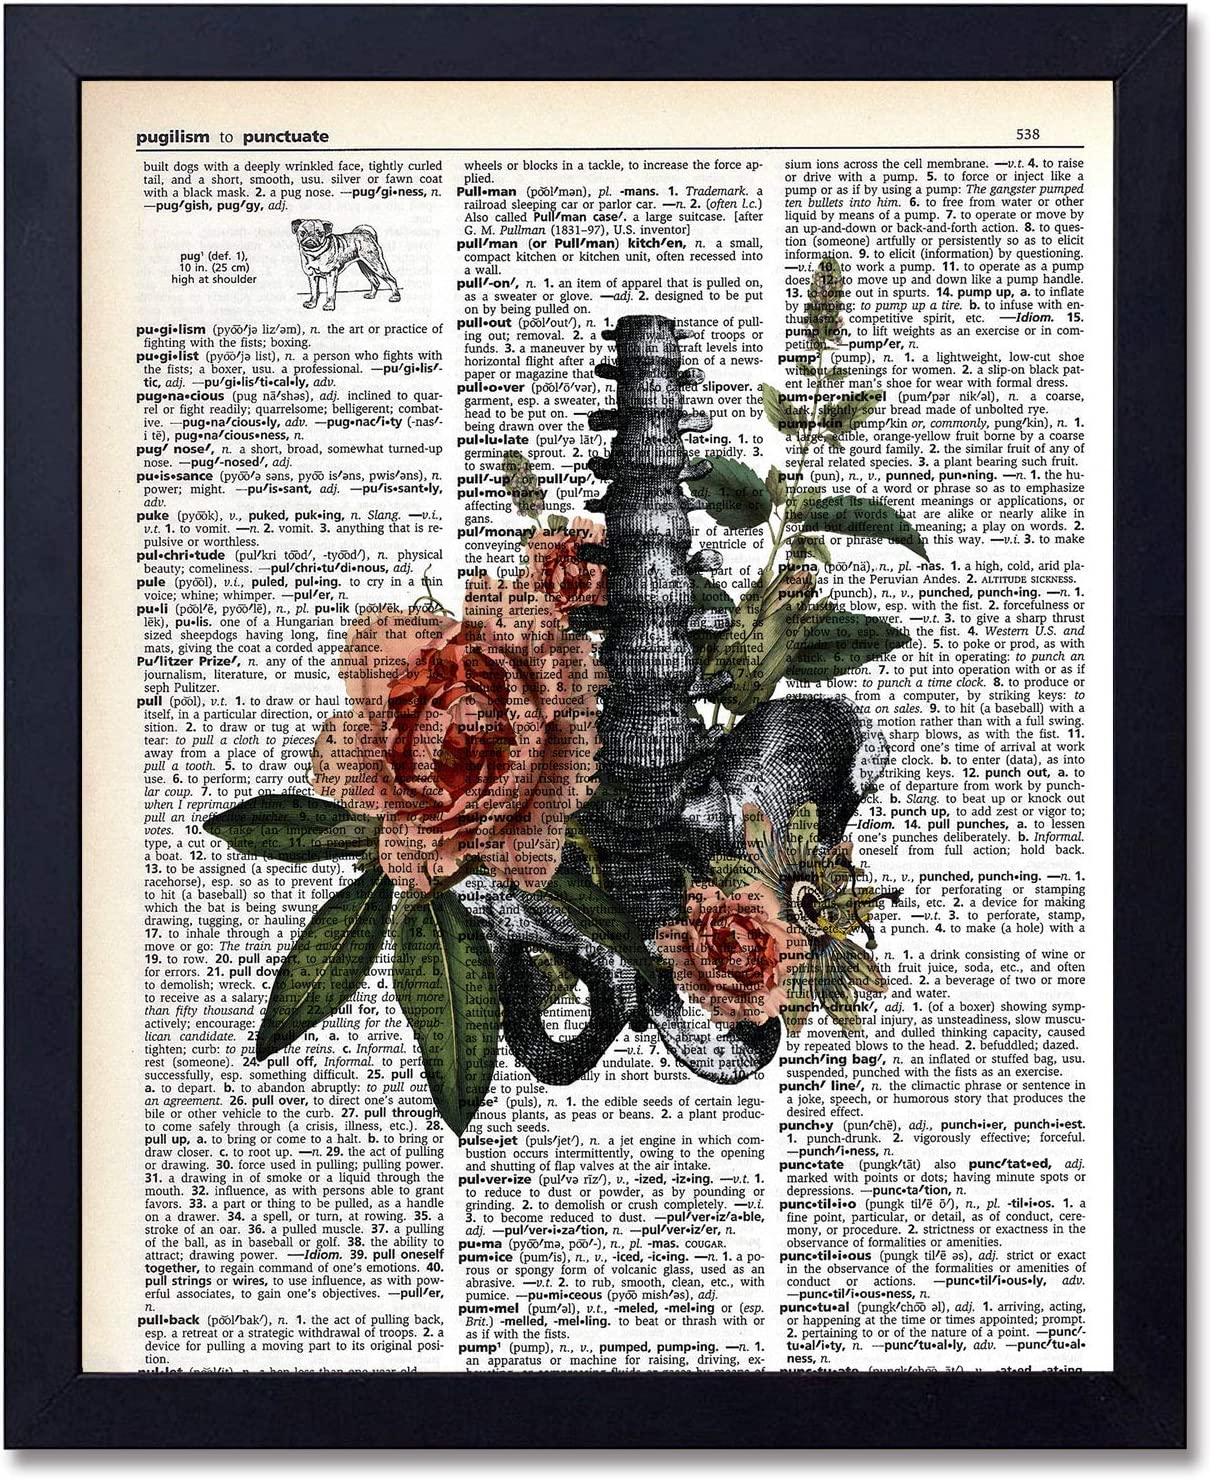 Organs & Flower Anatomy Dictionary Art Prints - Steampunk Medical Wall Art Goth Room Decor Gift for Office, Doctor's Office, Gift, Physician, Nurse, Unframed 8x10 inches